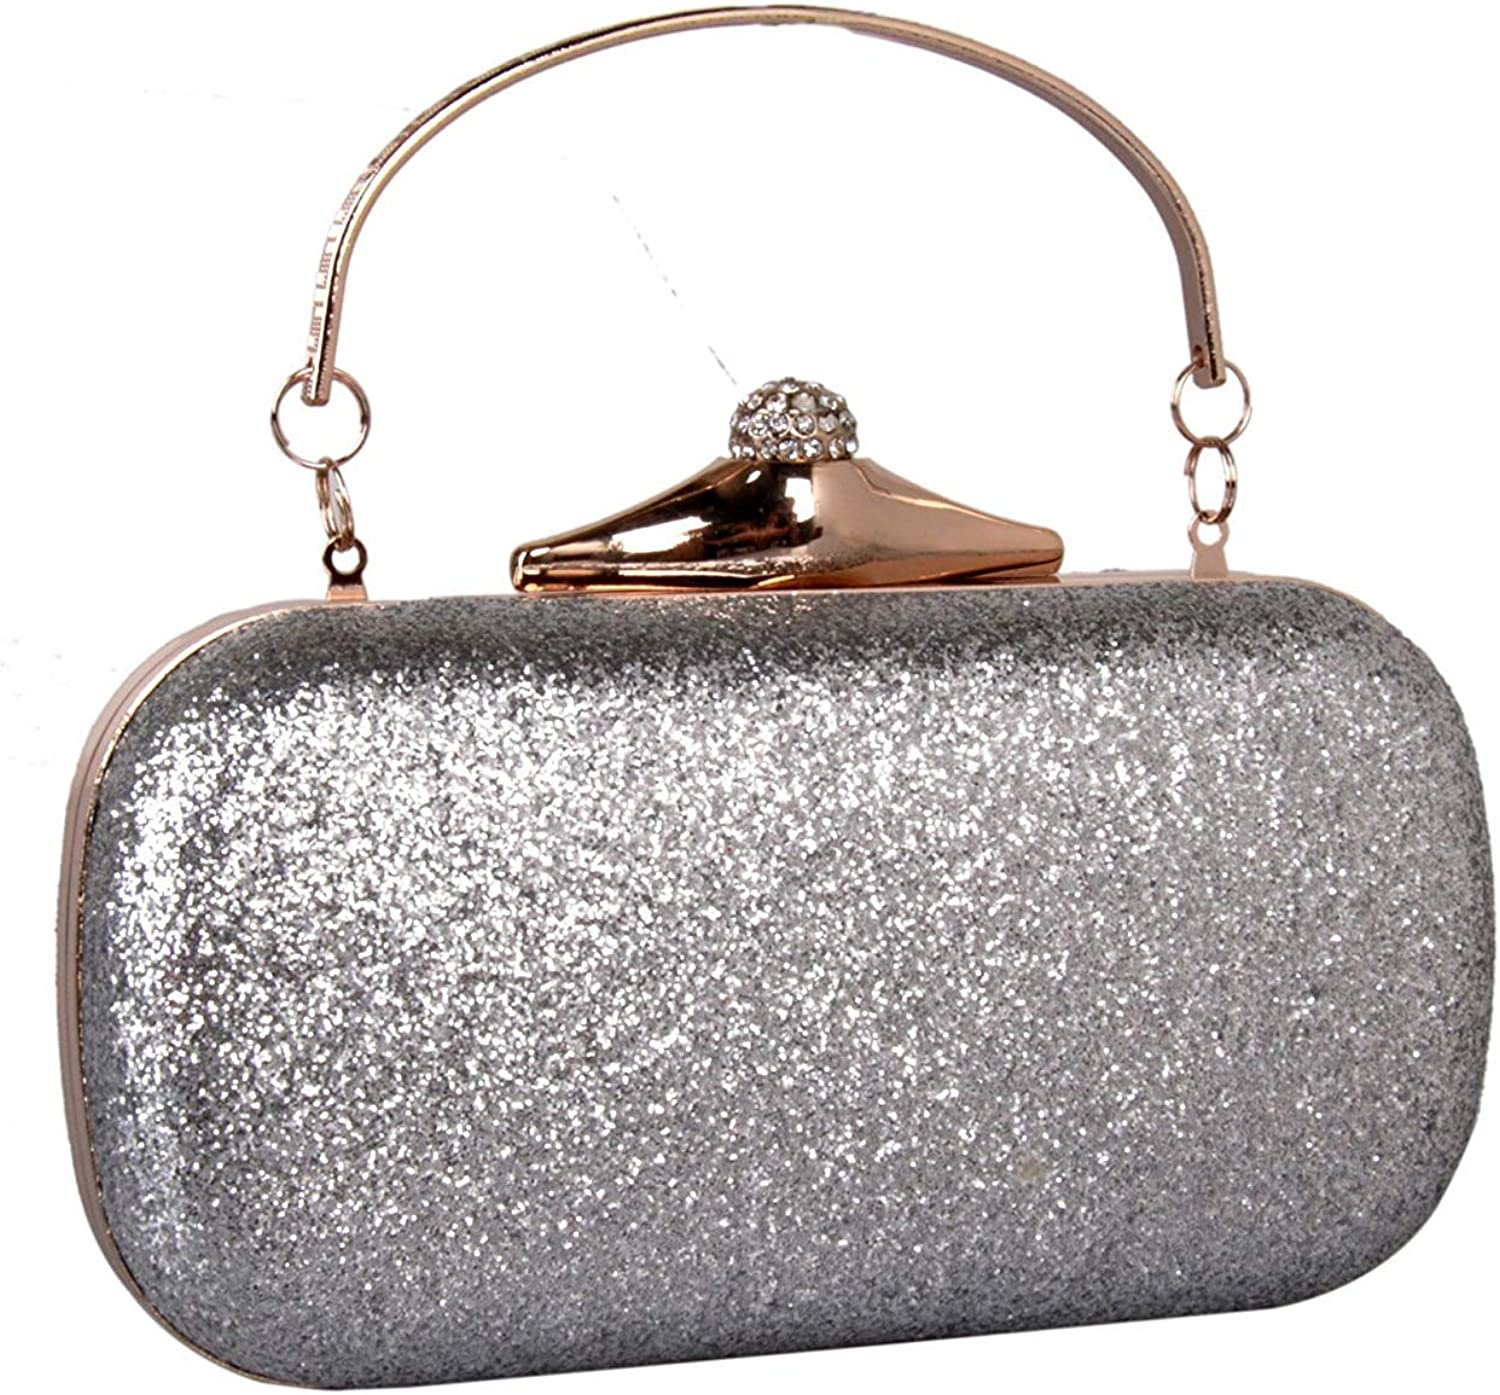 Ladies Handbag Ms. Hand Bag Piece Xiaoliang Yanbao Glitter Frosted shoes Ladies Hand Bag Simple Leather Bag (color   Silvery)